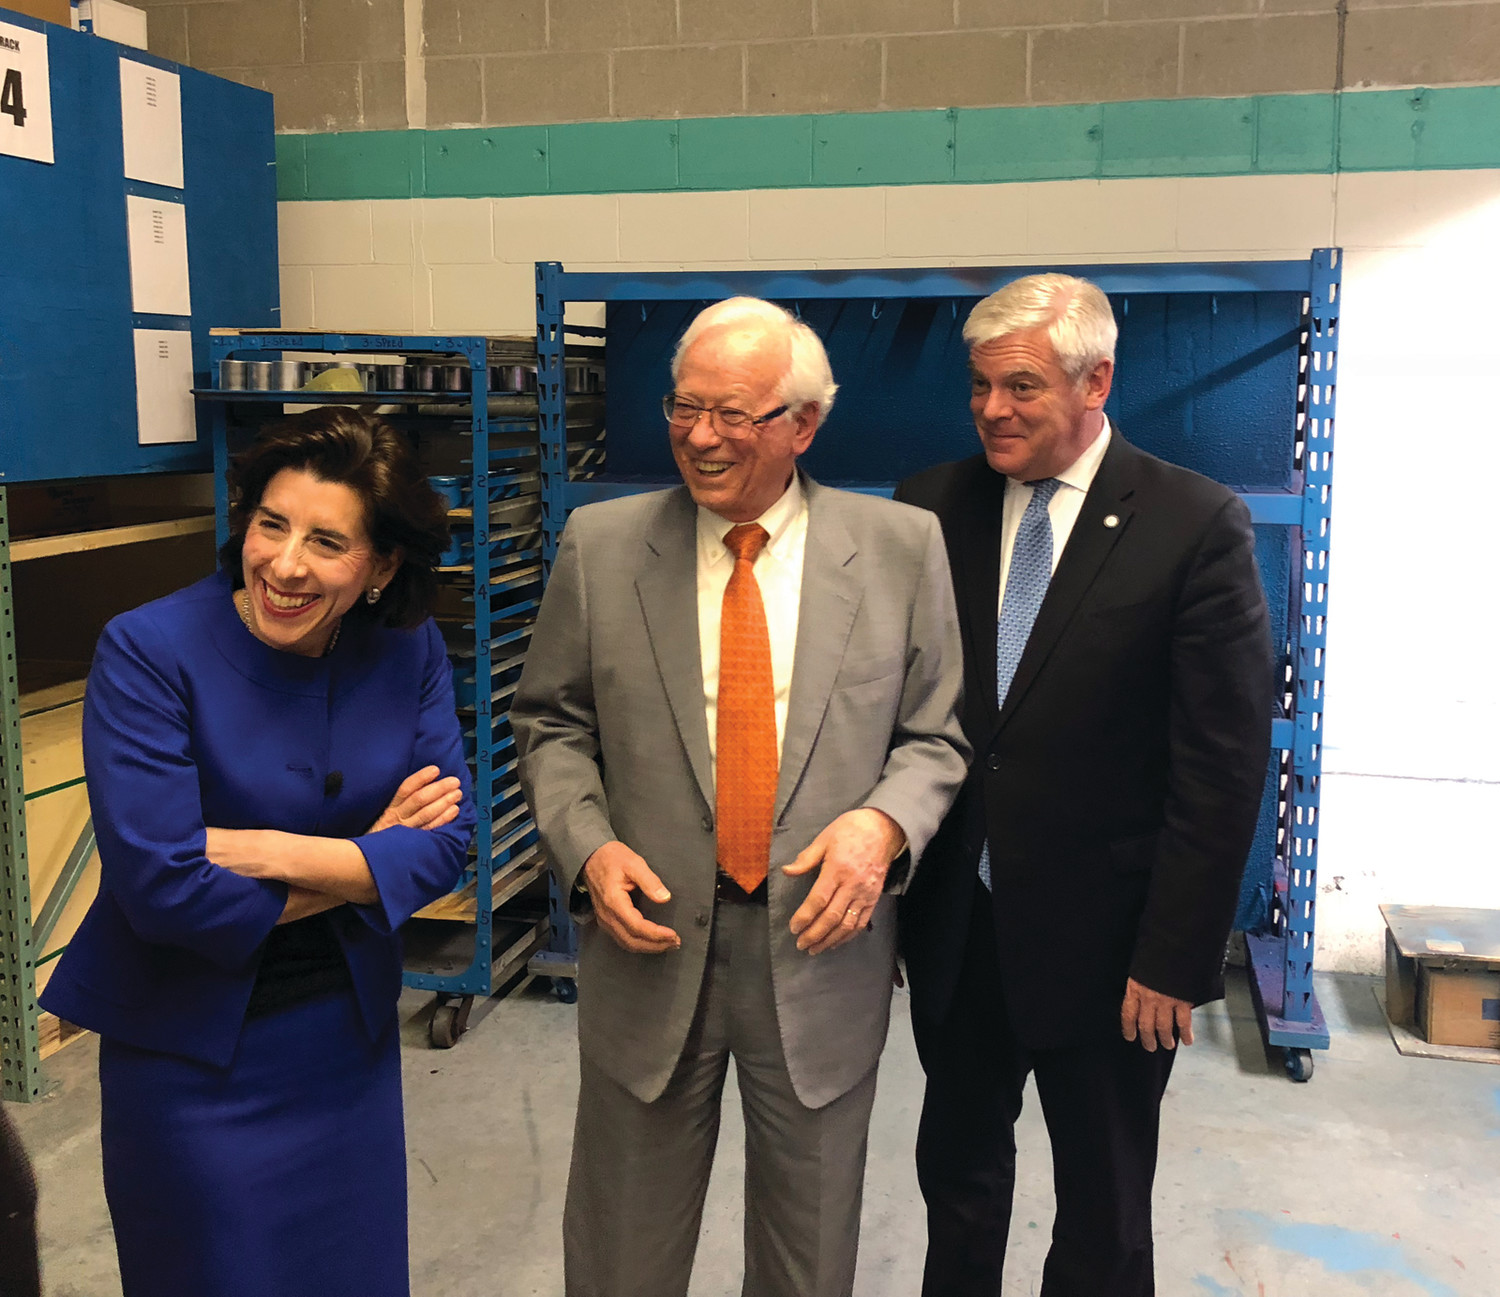 ON TOUR: Governor Gina Raimondo, AquaMotion president Hans Kuster and Mayor Scott Avedisian enjoyed a tour through the AquaMotion facility on Jefferson Boulevard in Warwick on Tuesday afternoon.